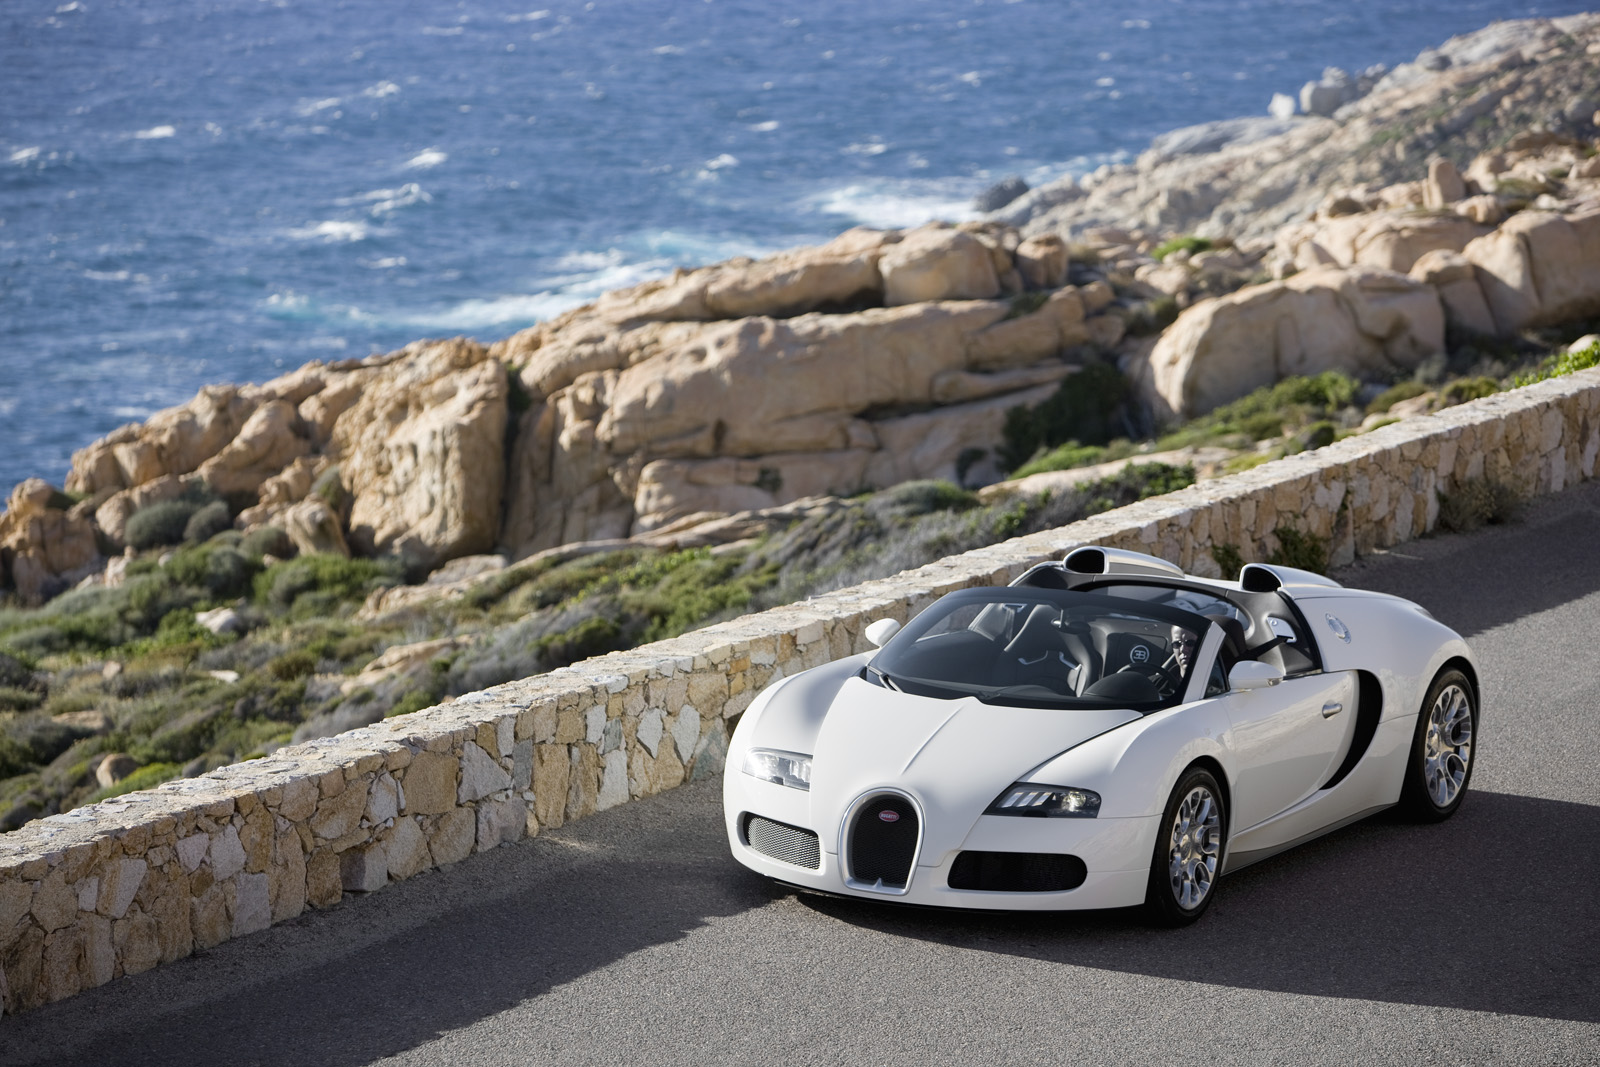 Bugatti Veyron Wallpaper High Definiiton